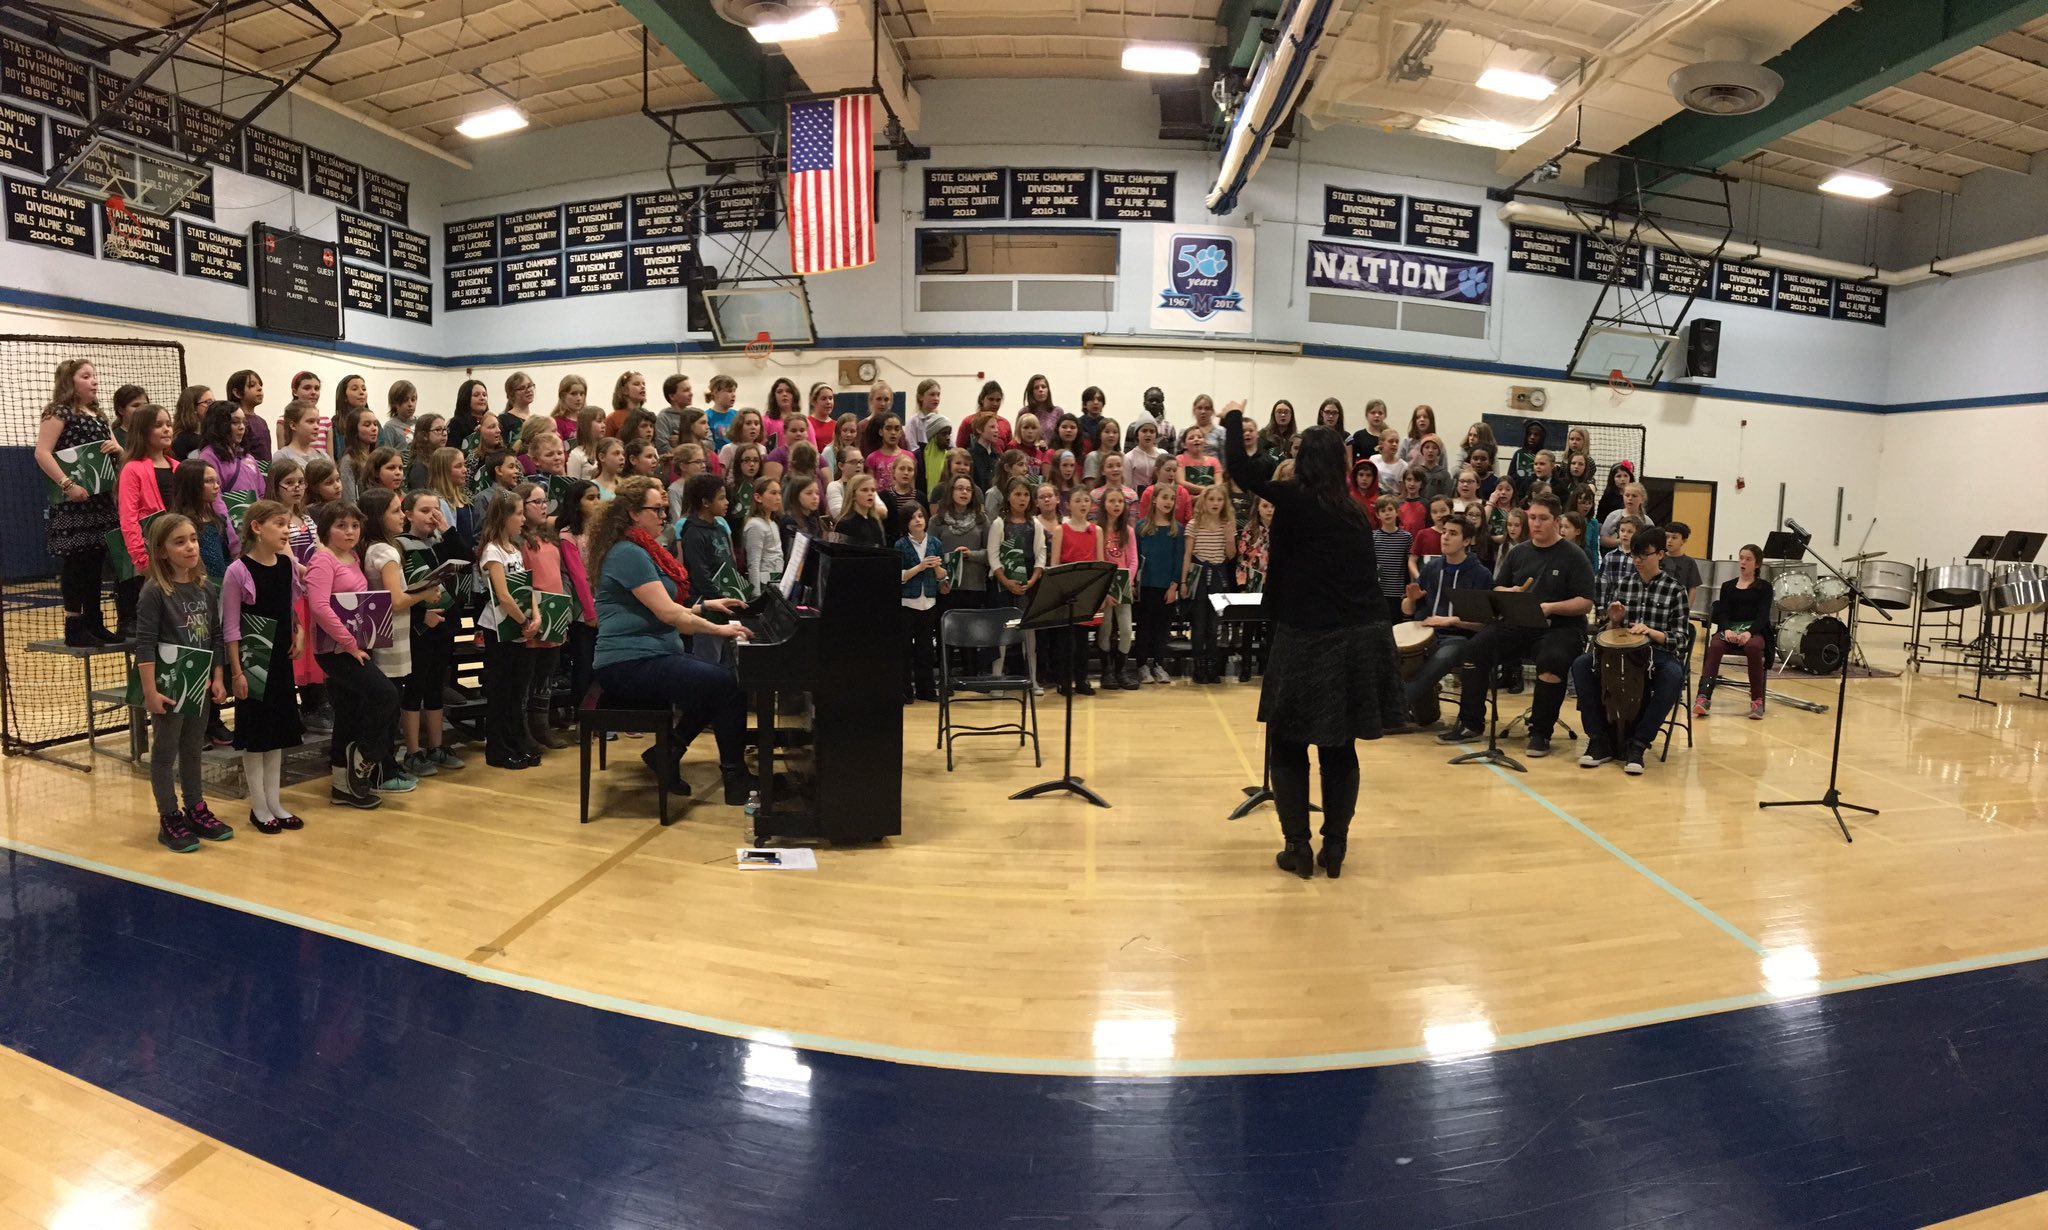 Celebrating the first VMEA 4th and 5th grade choral/world drumming festival~ #MIOSM #NAfME https://t.co/wTG4OmQC4B